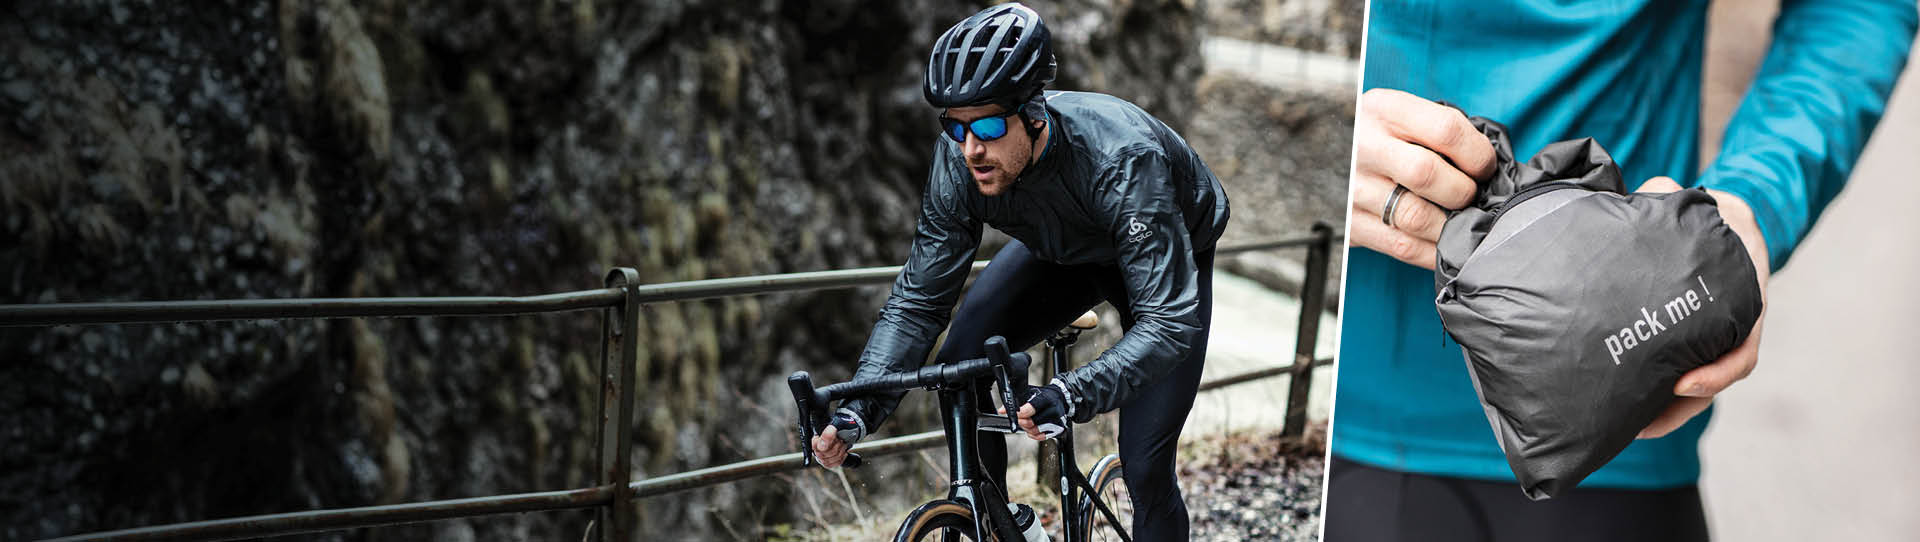 ODLO jackets collection - Rain jacket, windbreaker & insulation jacket - Collection Fall winter 2020